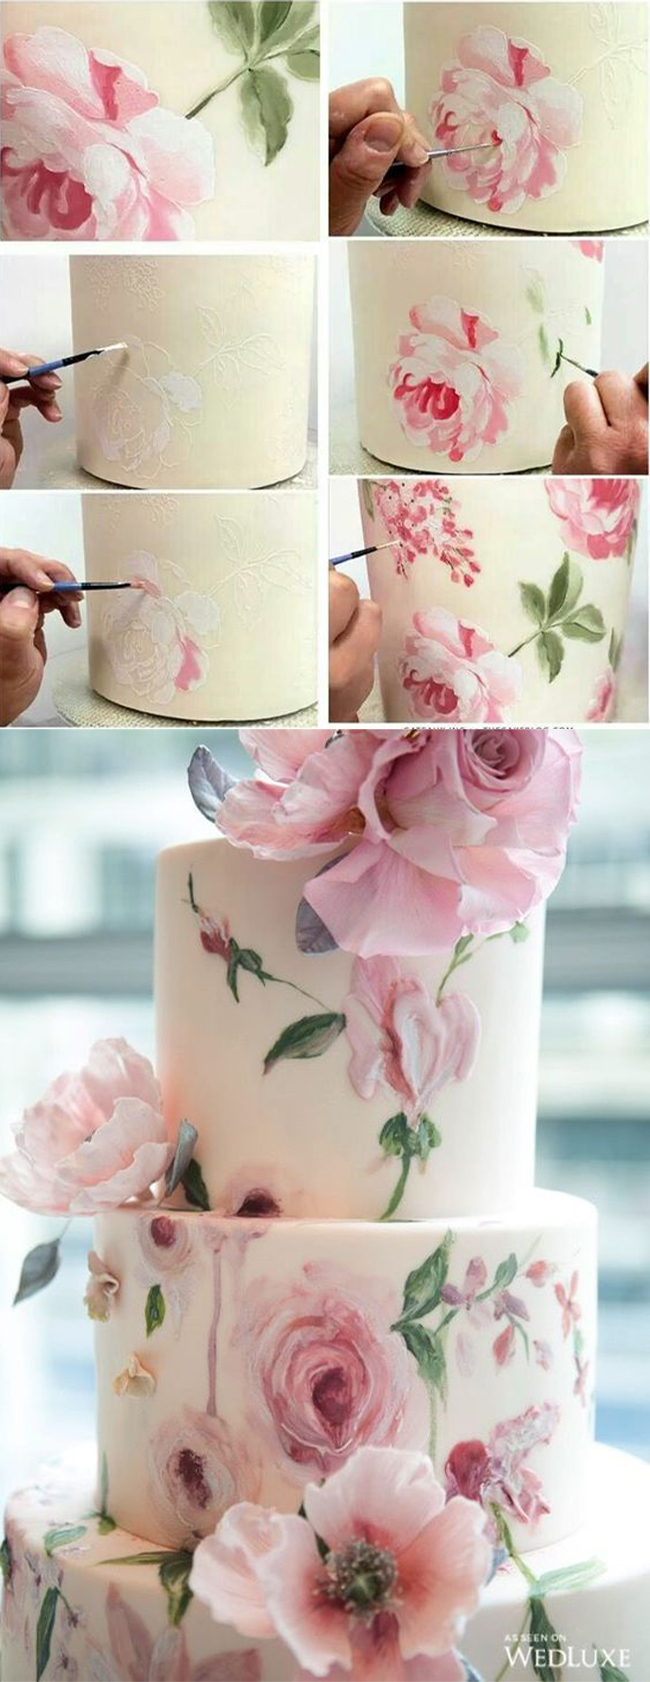 blush floral paint smudge wedding cake